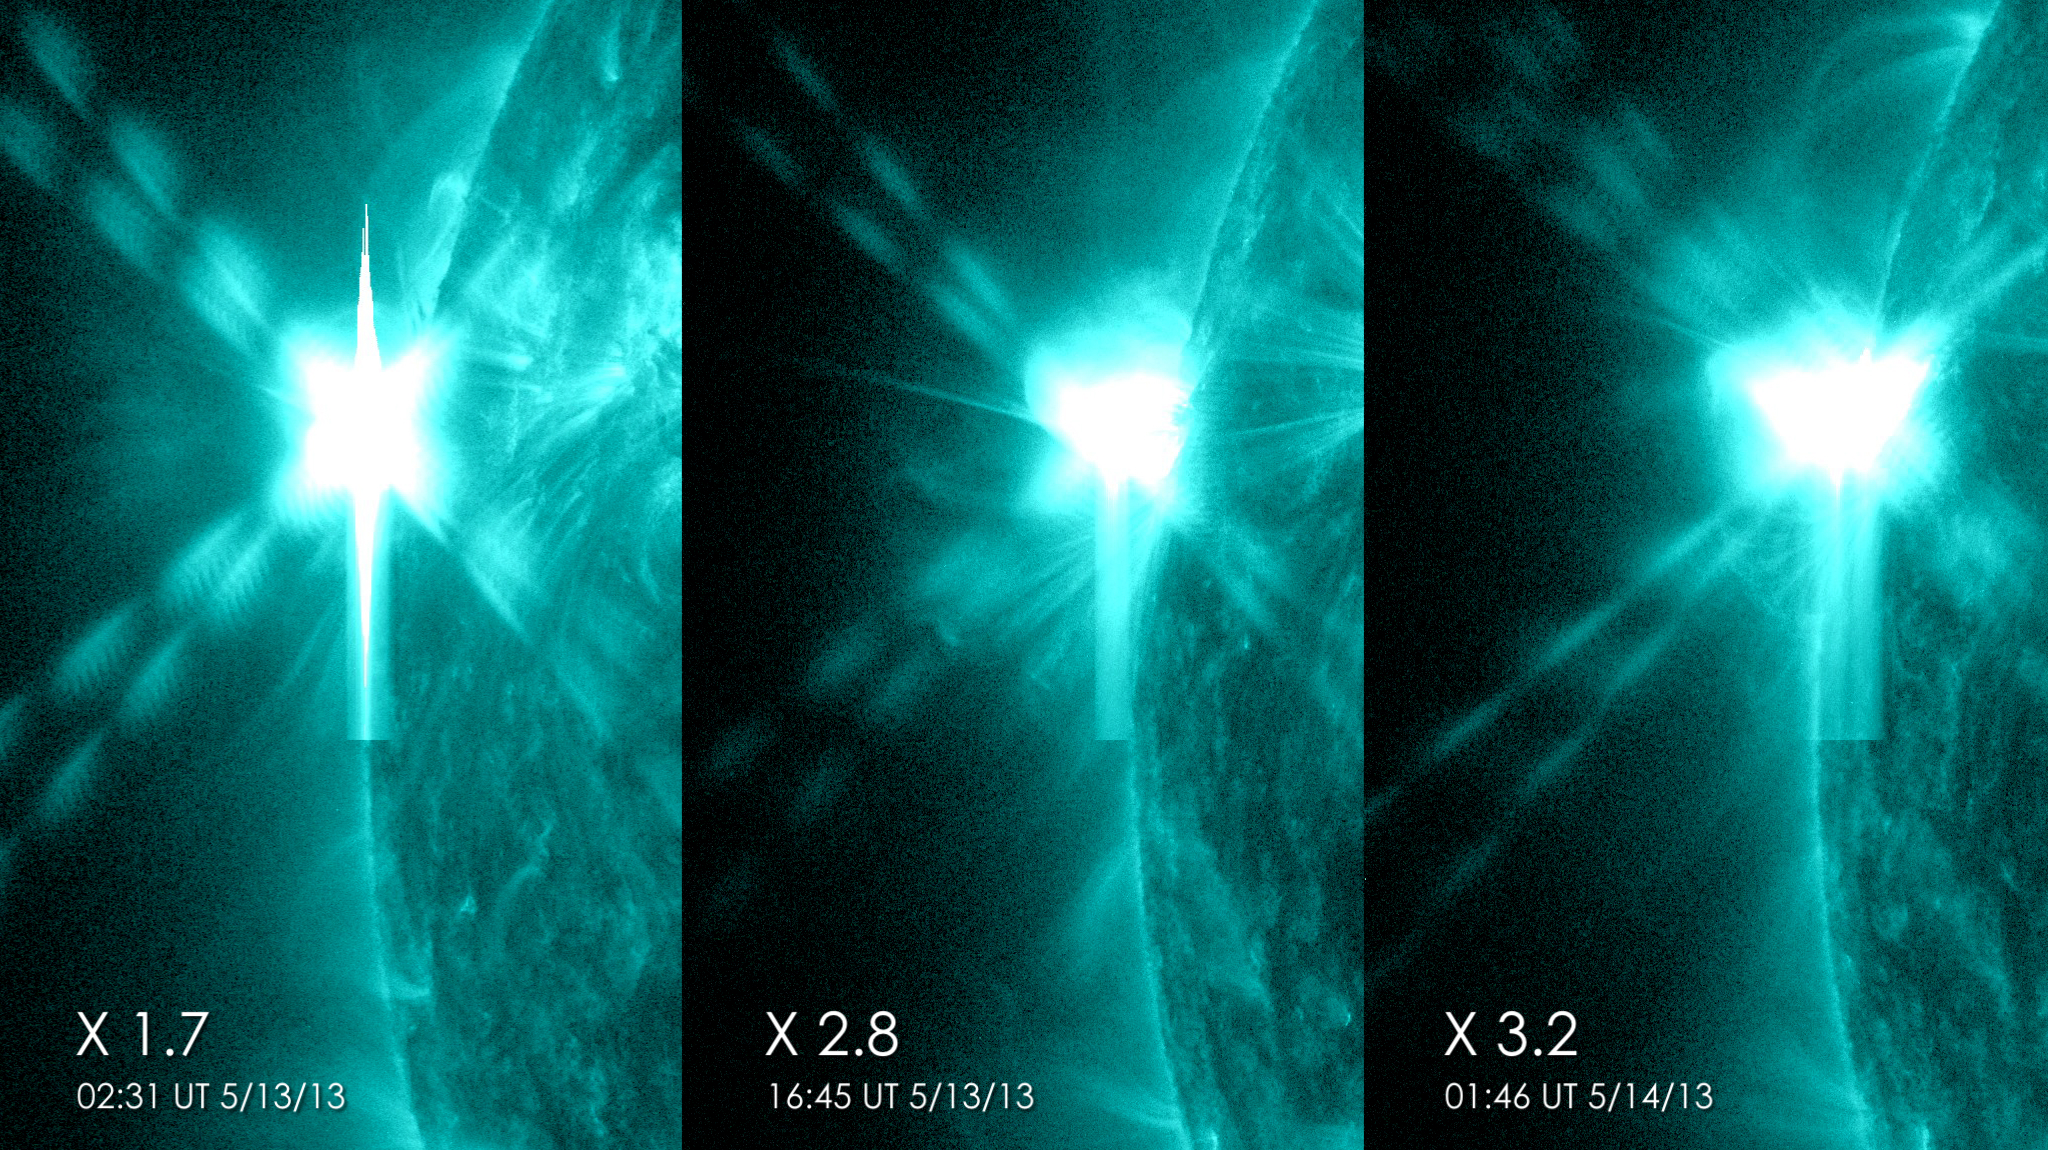 three side by side SDO images showing May 12 13 solar flares